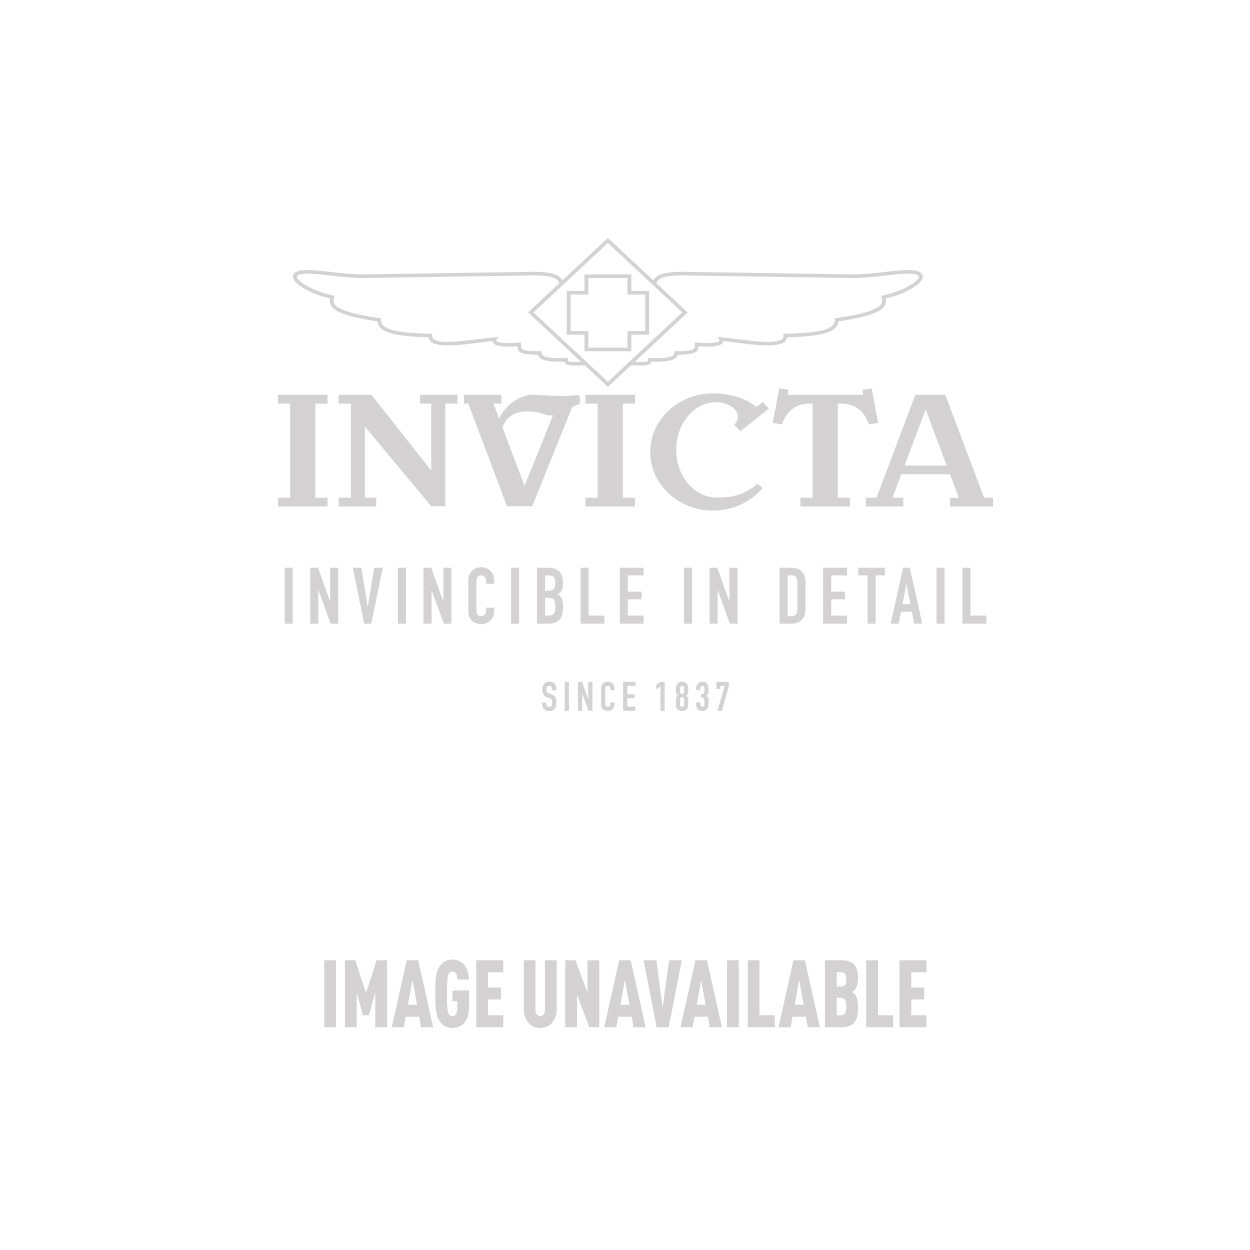 Invicta Sea Hunter  Quartz Watch - Stainless Steel case with White tone Leather band - Model 12179